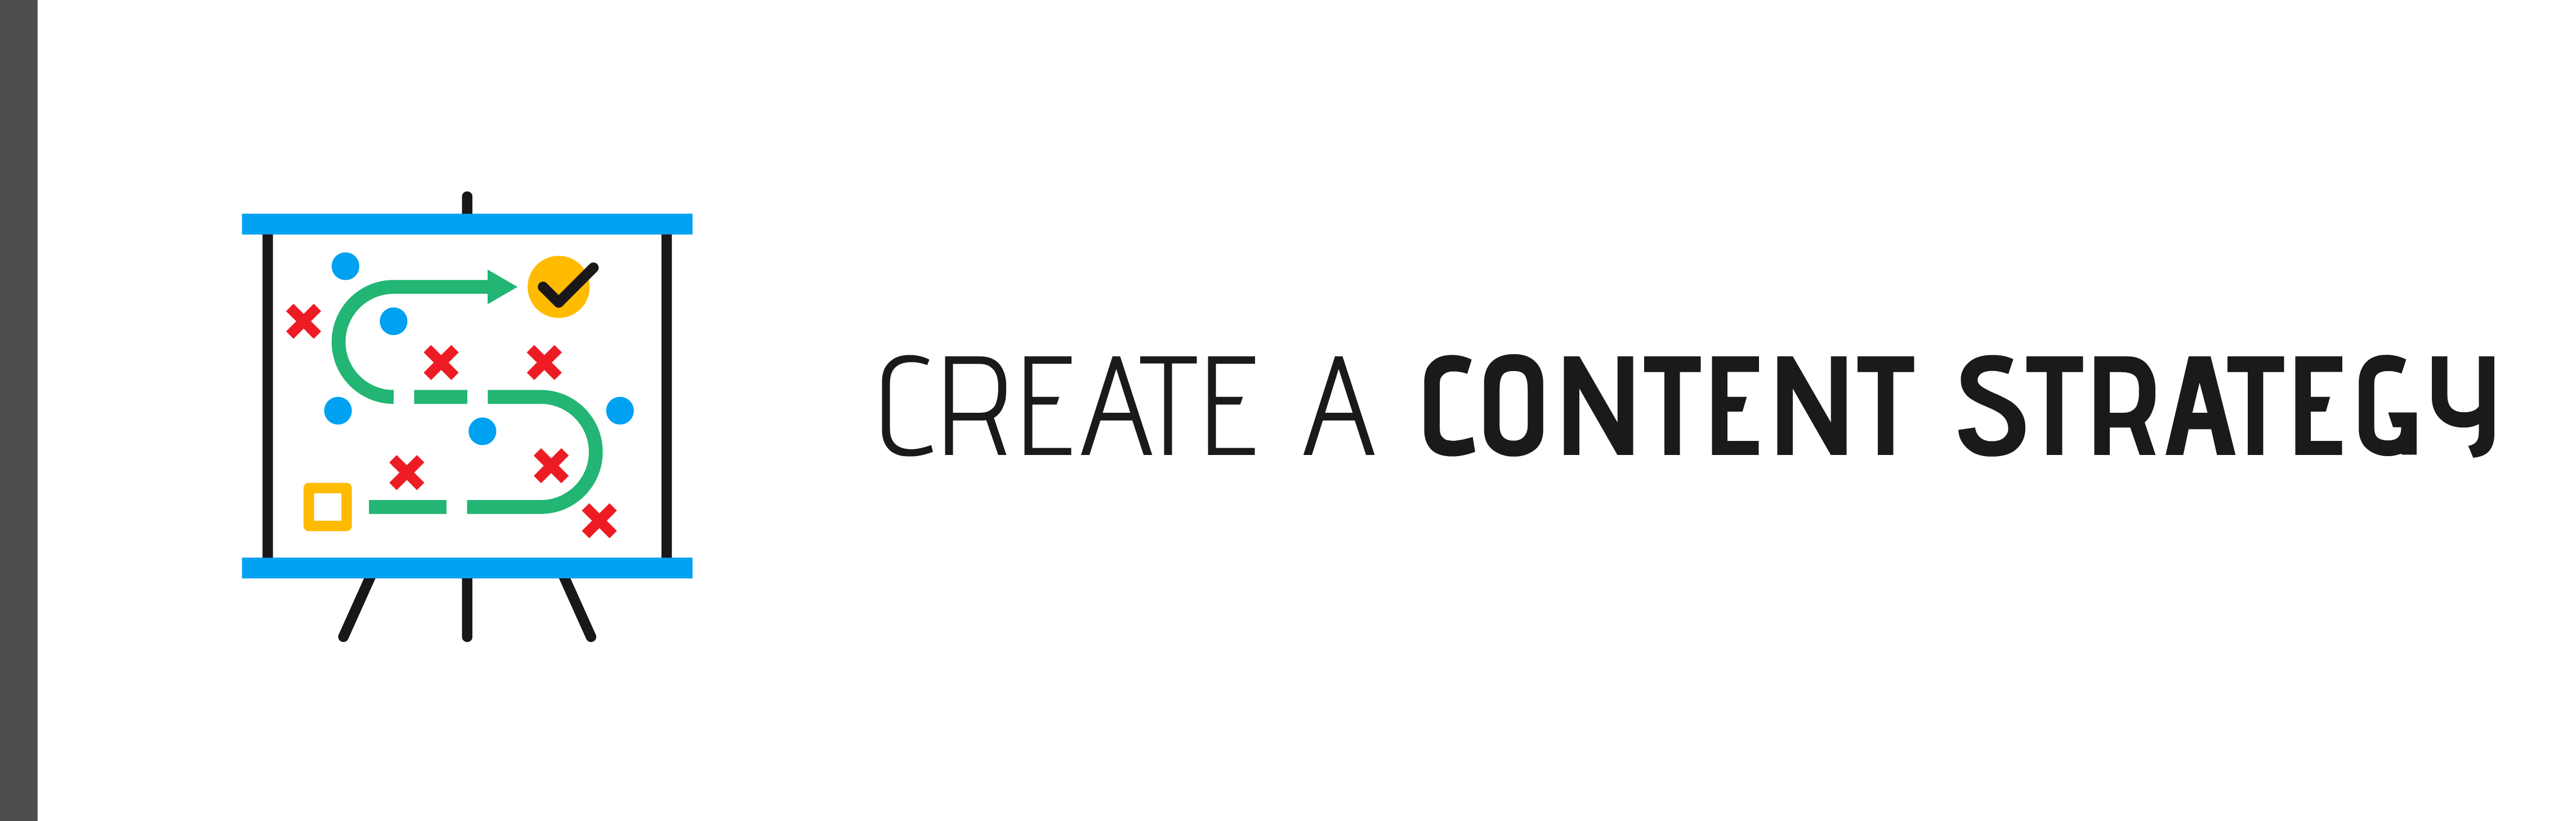 Create A Content Strategy For Your Brand